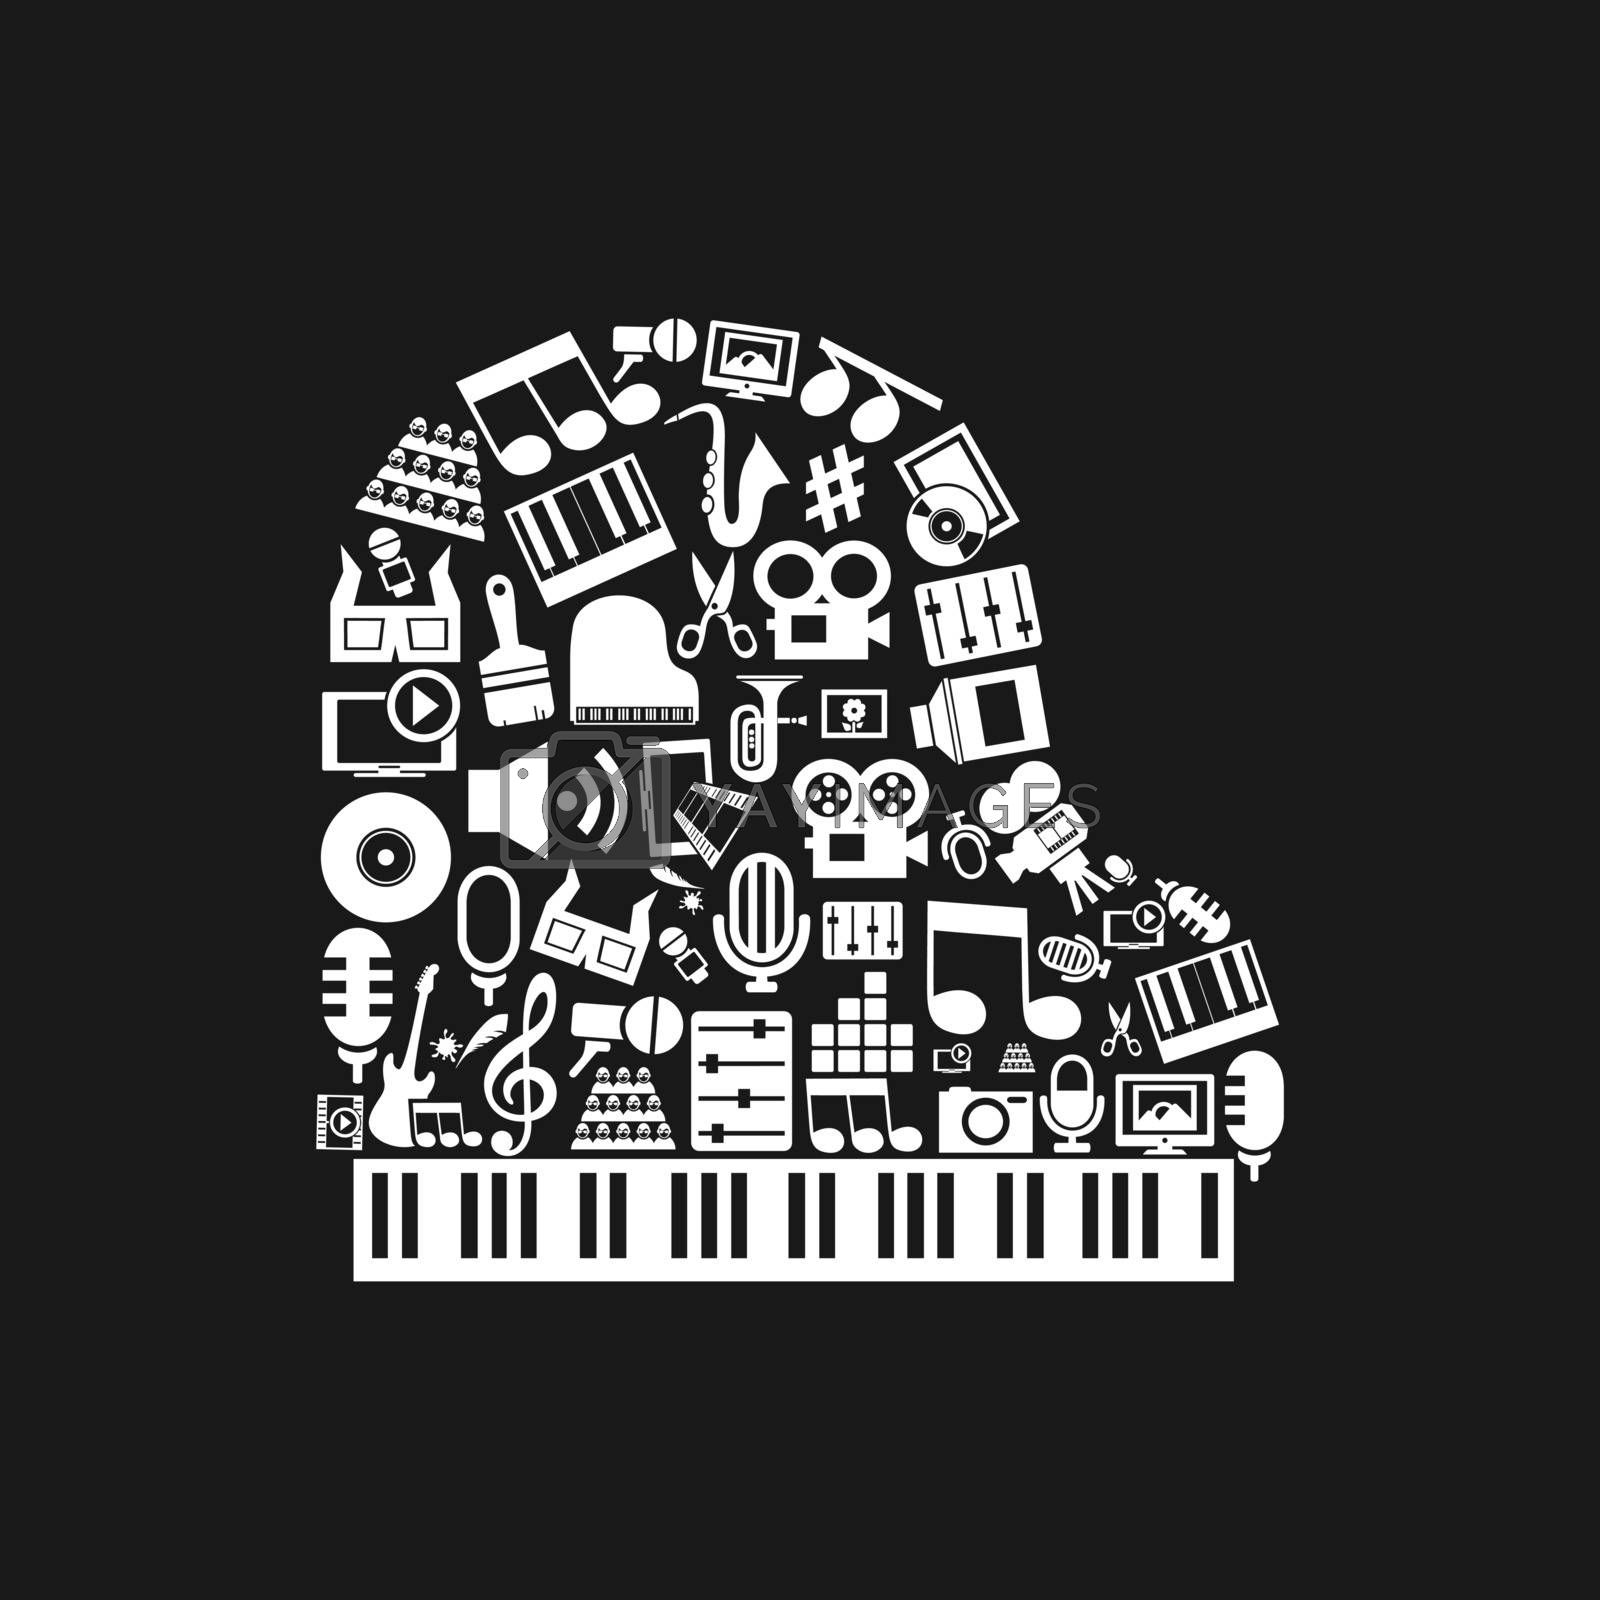 The piano made of art. A vector illustration